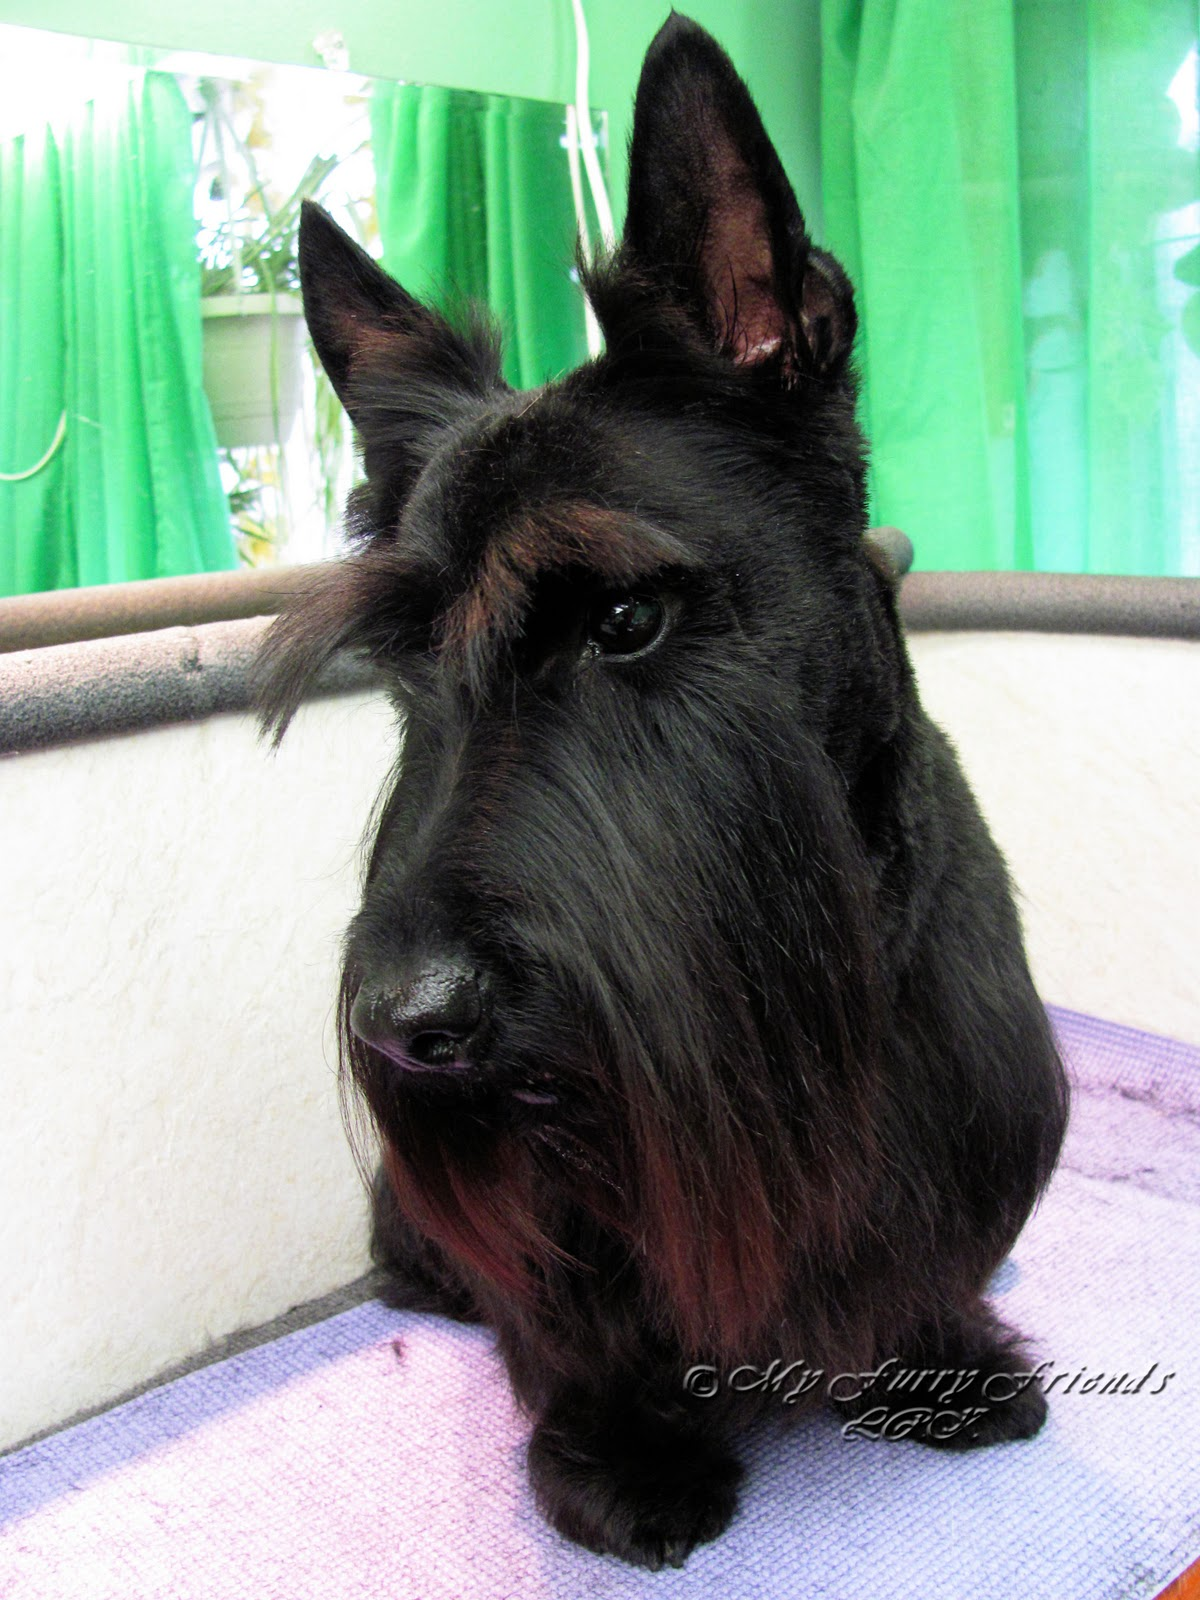 pet grooming the good the bad the furry a scottie makeover